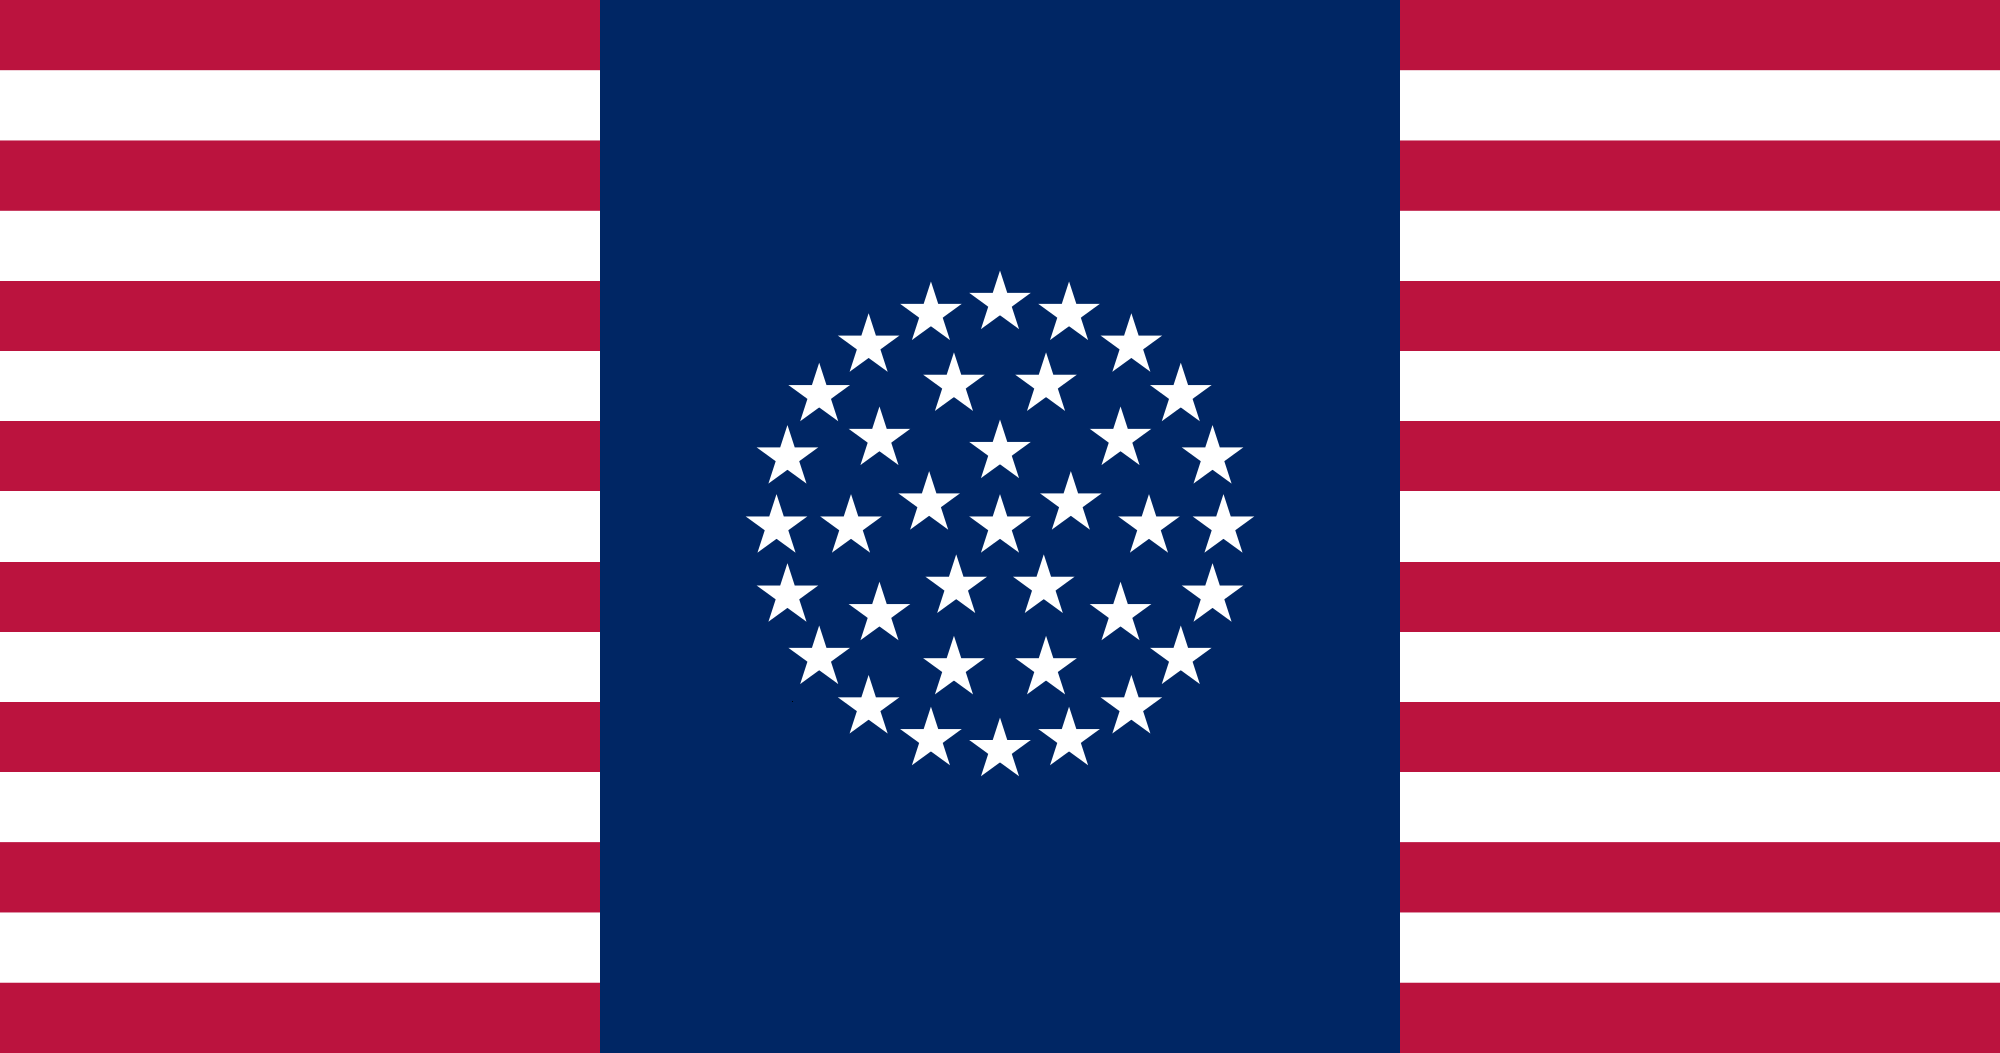 Flag of the United States 36 Stars (Rule, Britannia!).png